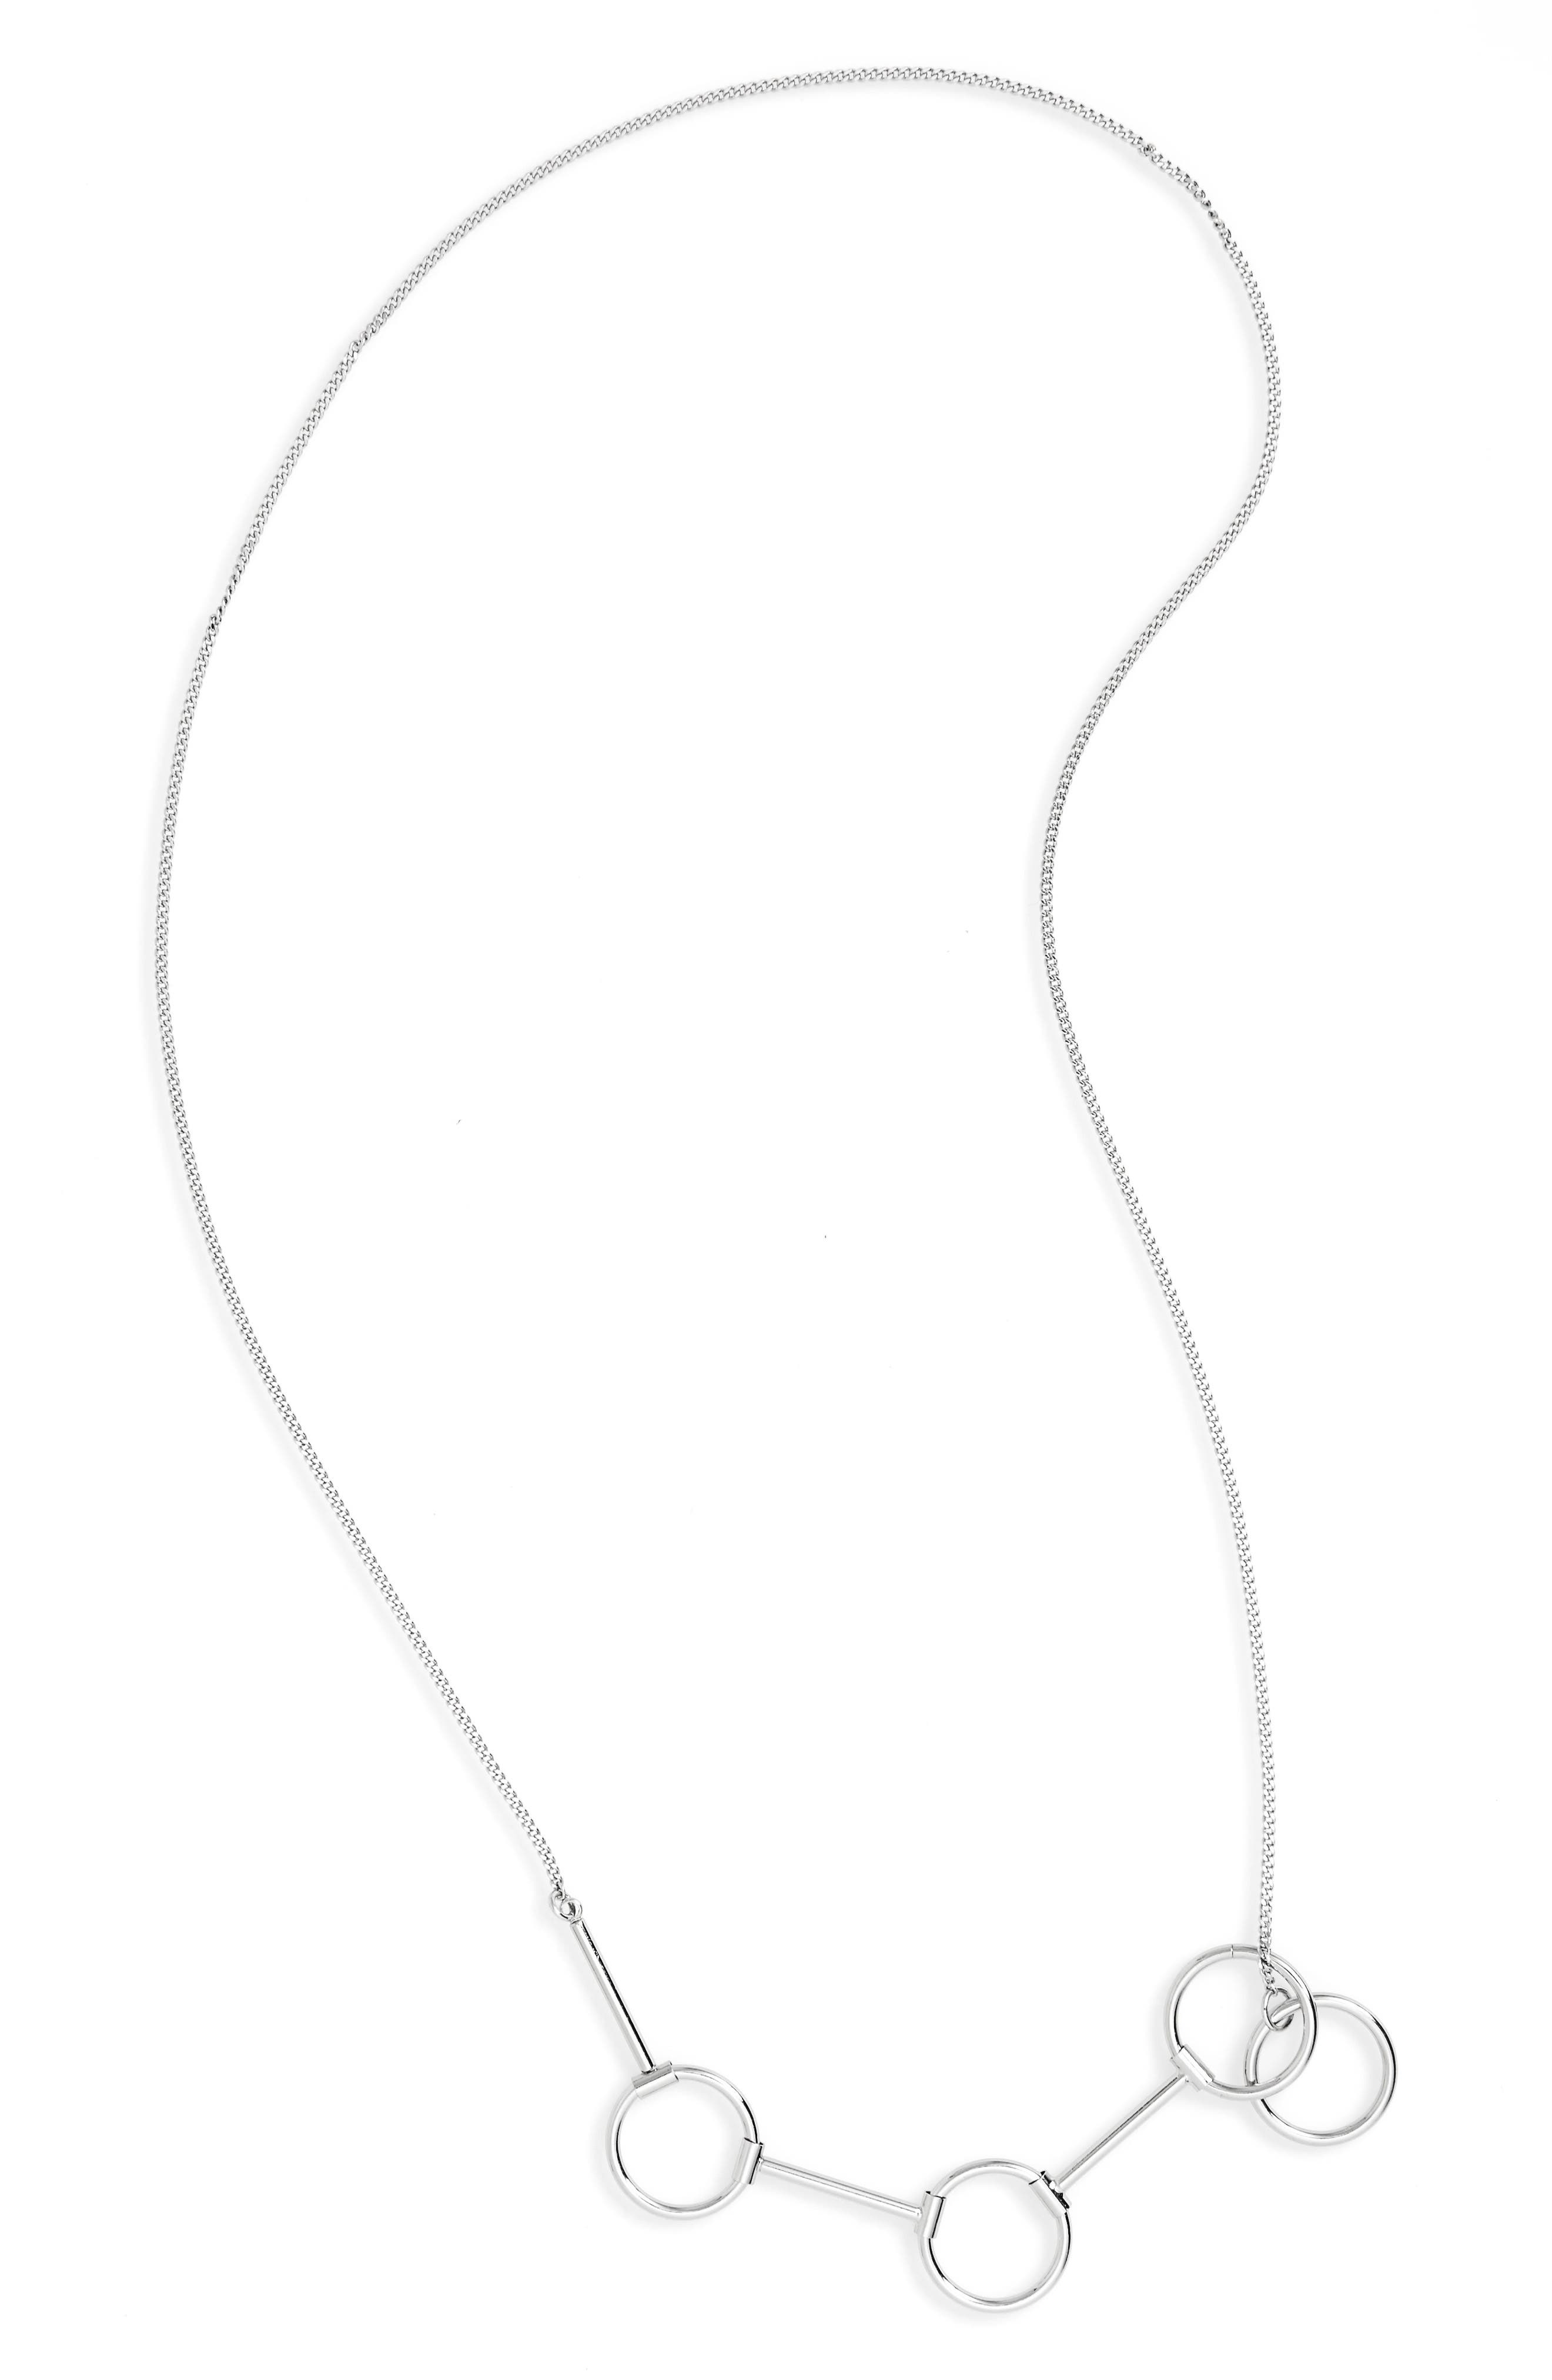 Circle Link Chain Necklace,                             Main thumbnail 1, color,                             000